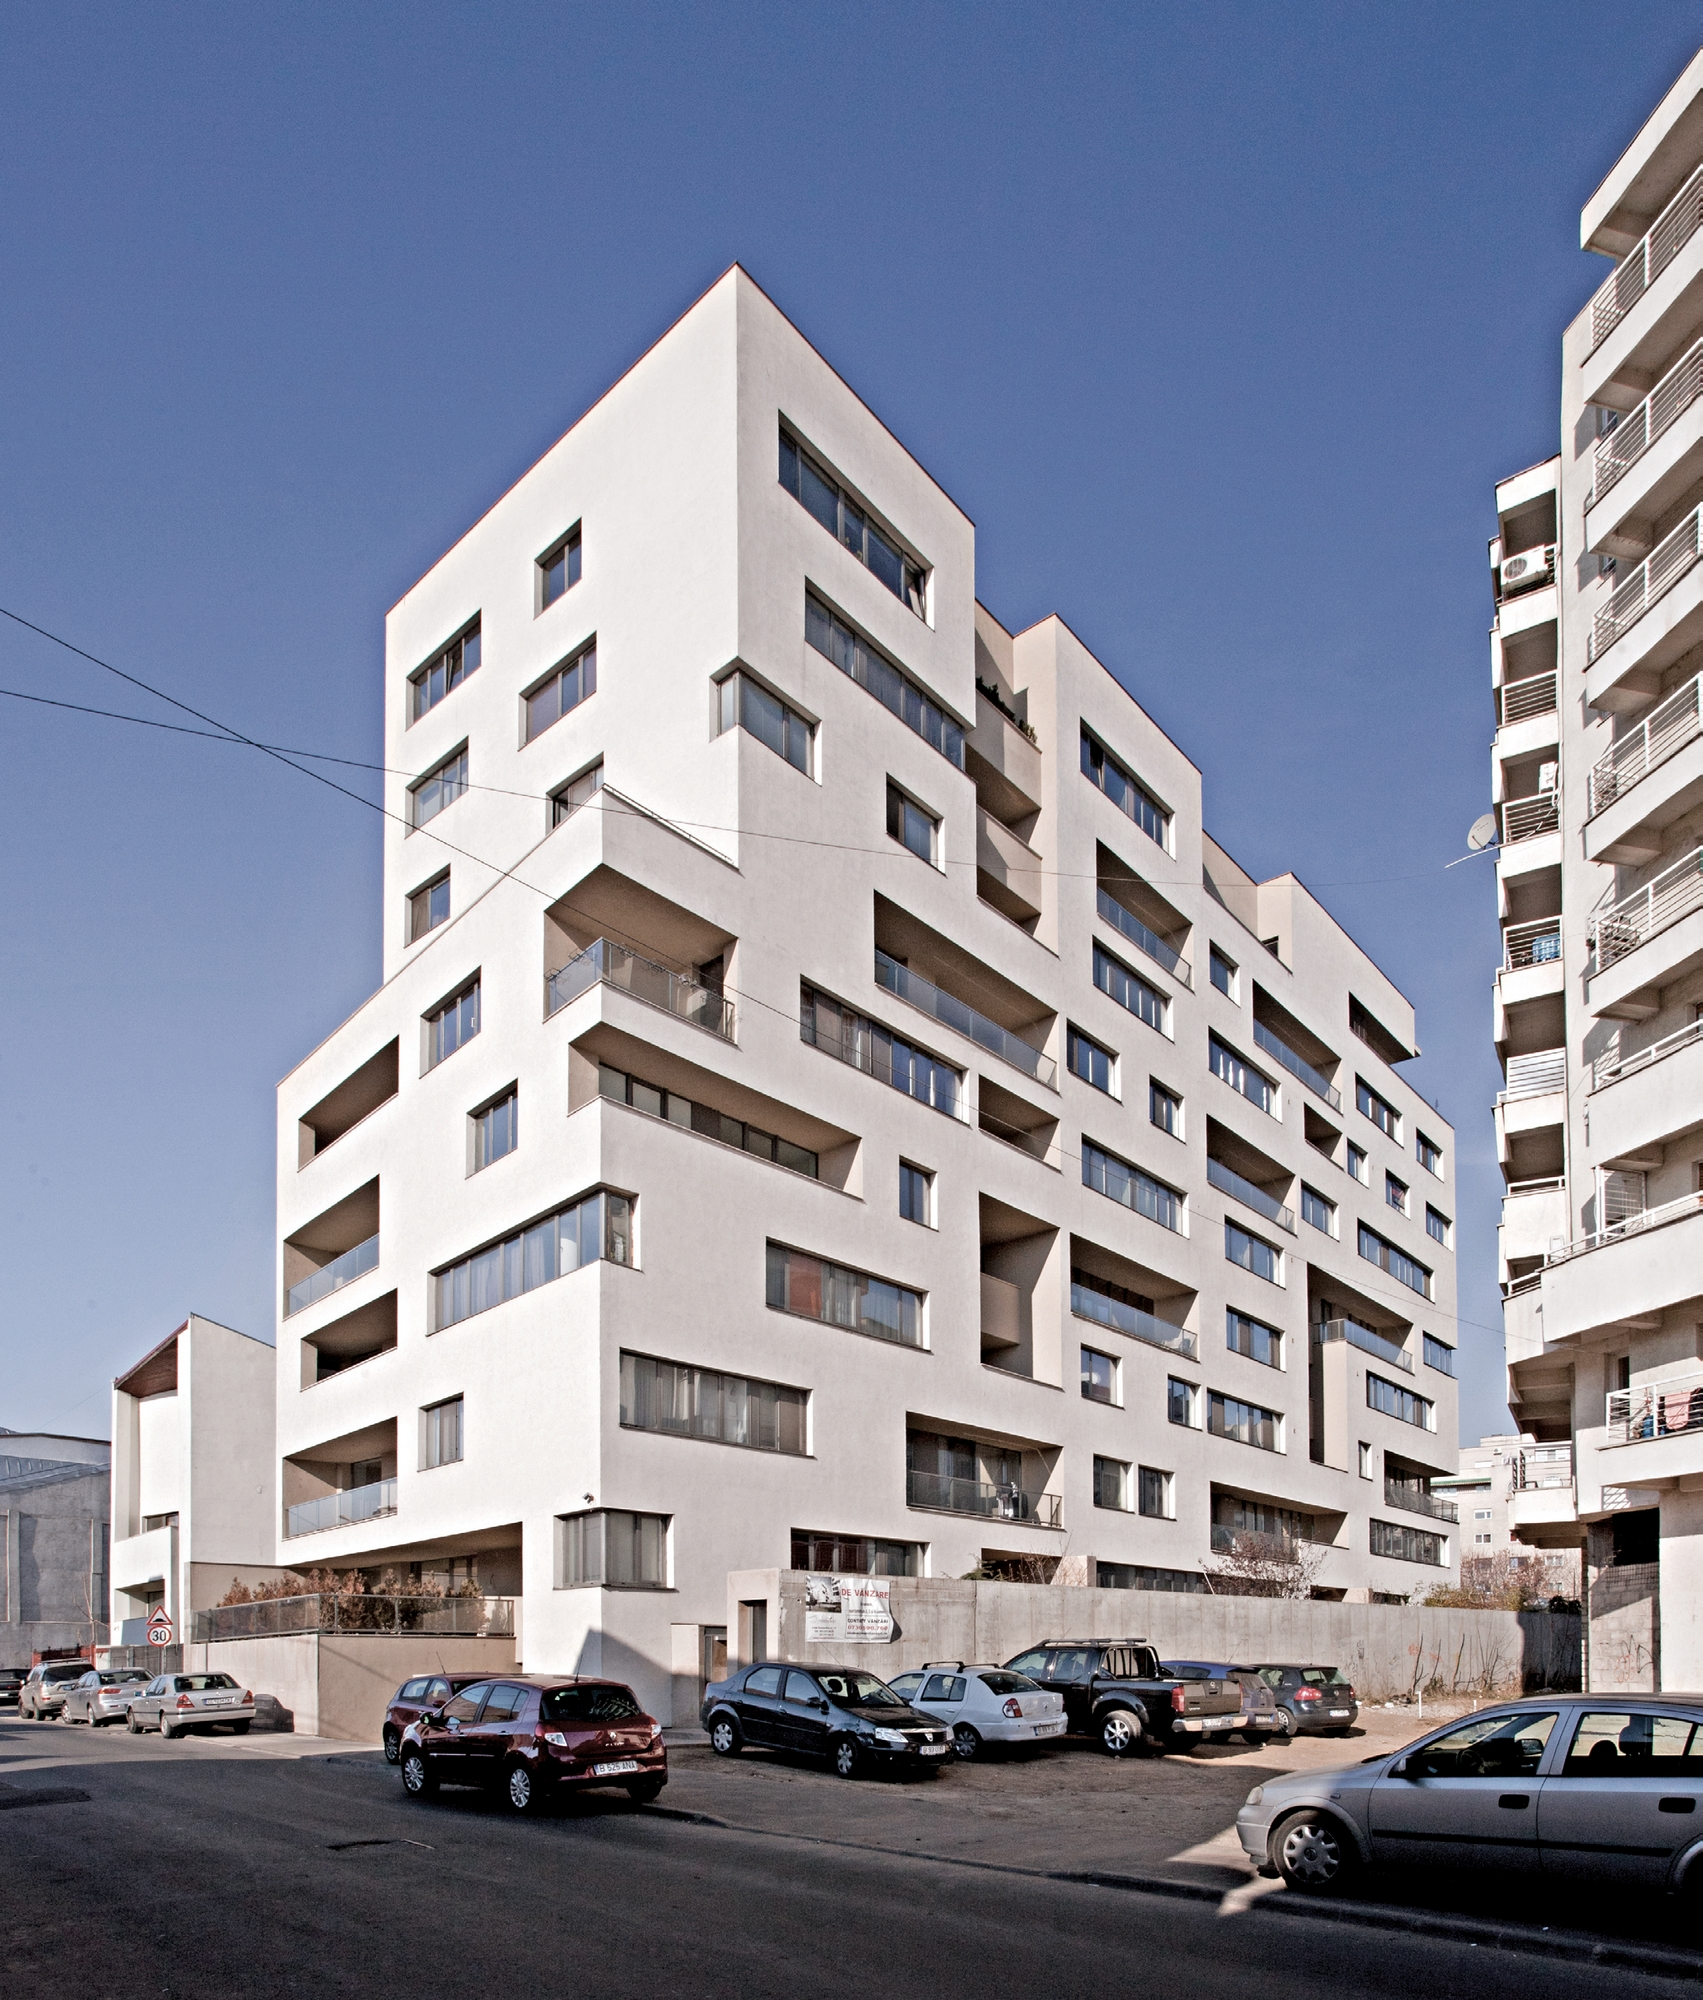 Sirenelor Apartments cover